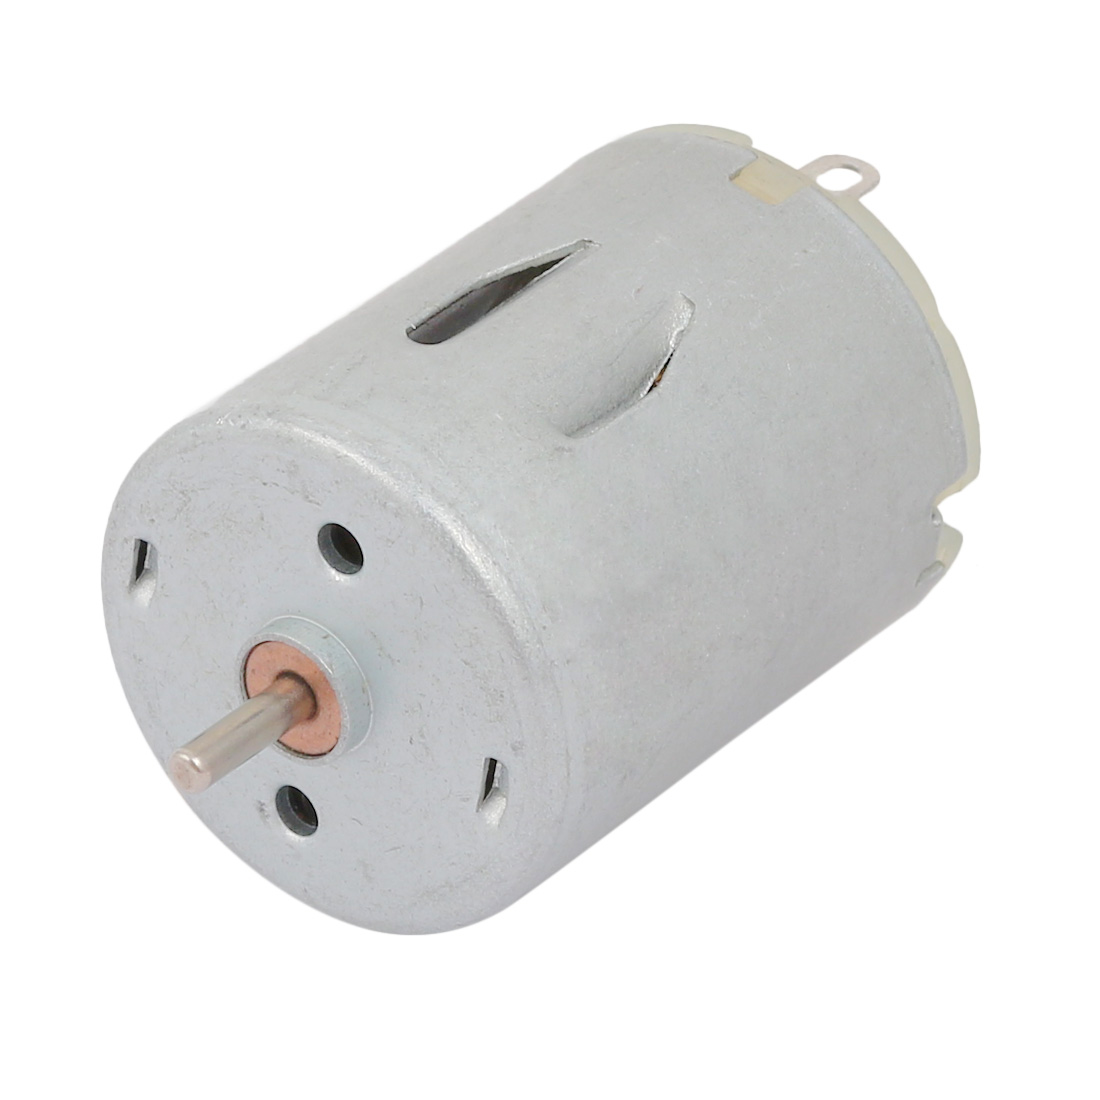 R280 DC12V 22000RPM 2mm Dia Shaft Brushed High Speed DC Motor for RC Model Toy